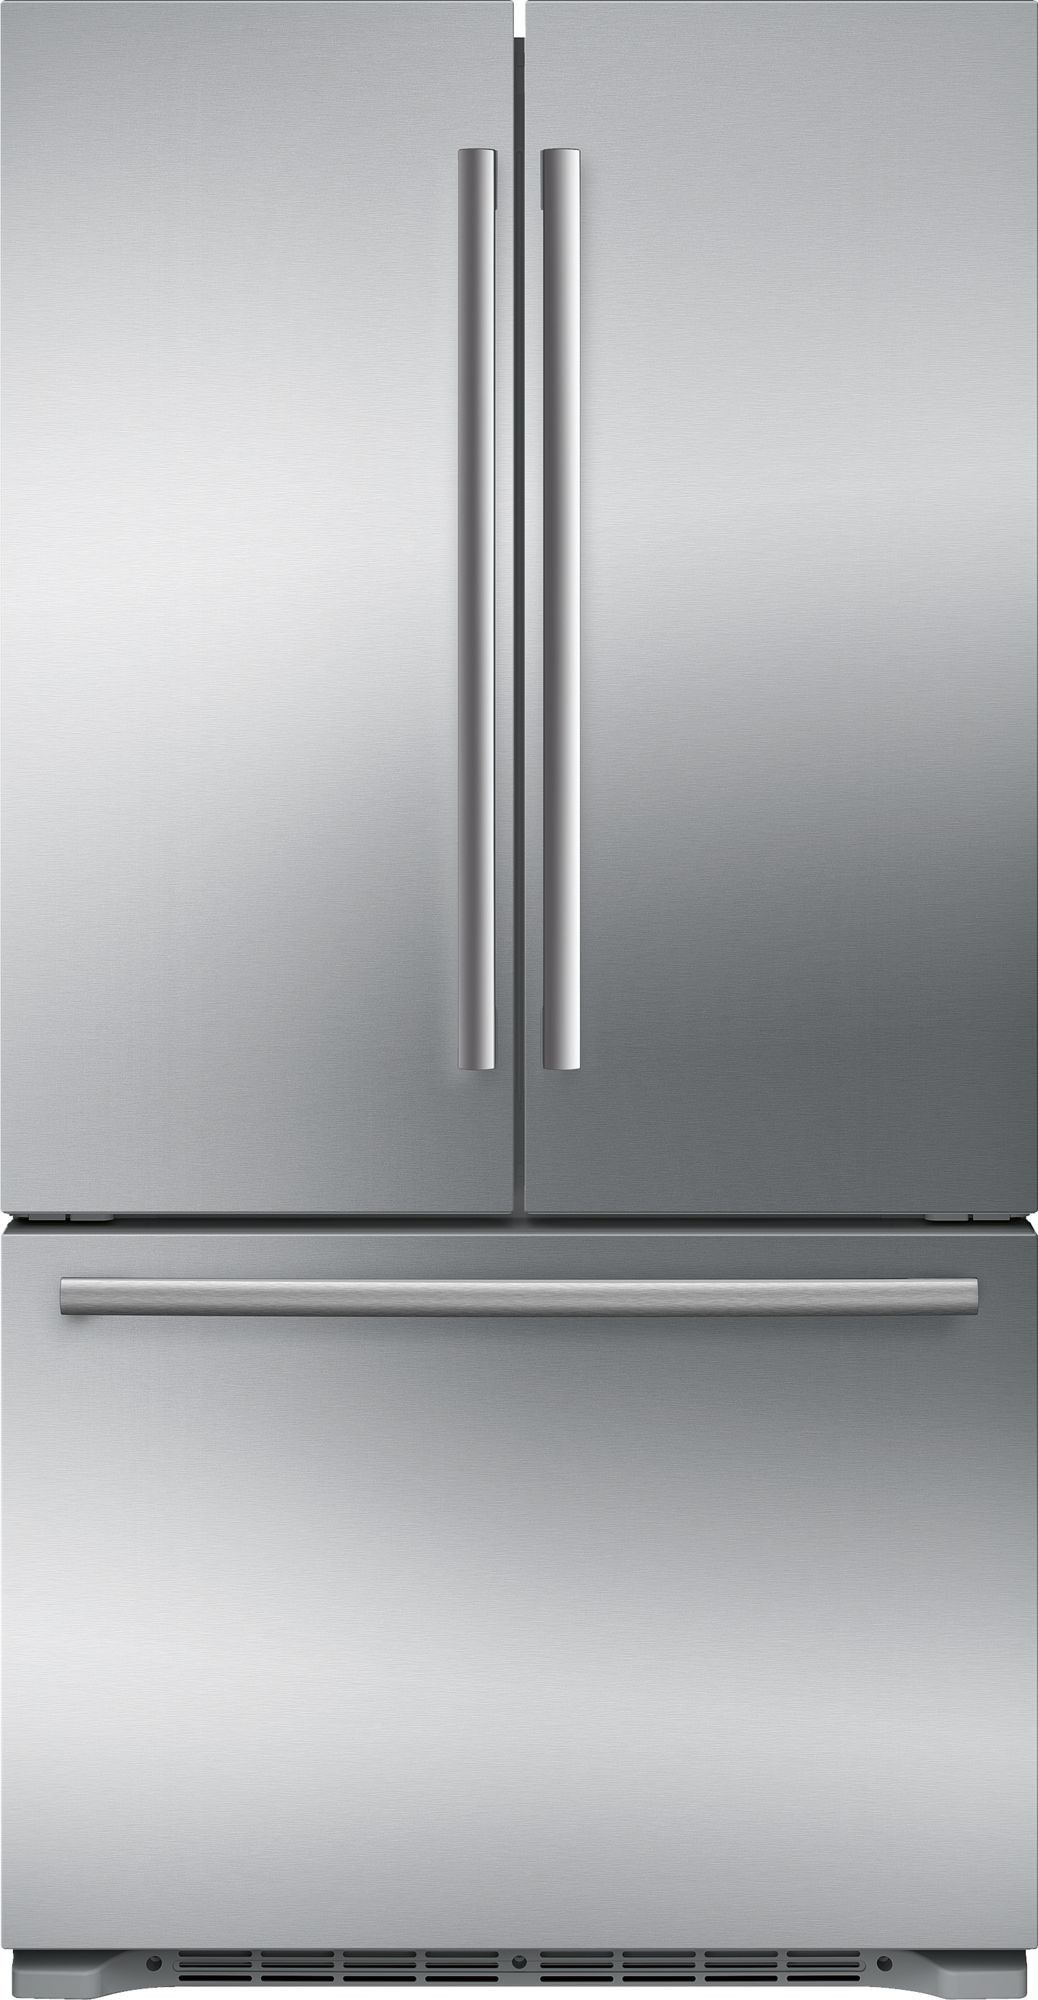 Bosch B21ct80sns 36 Inch Counter Depth French Door Refrigerator With Filtered Automatic Ice Maker Retractable Half Shelf Full Width Chiller Drawer Dual Airco Counter Depth Refrigerator Stainless Refrigerator Counter Depth French Door Refrigerator